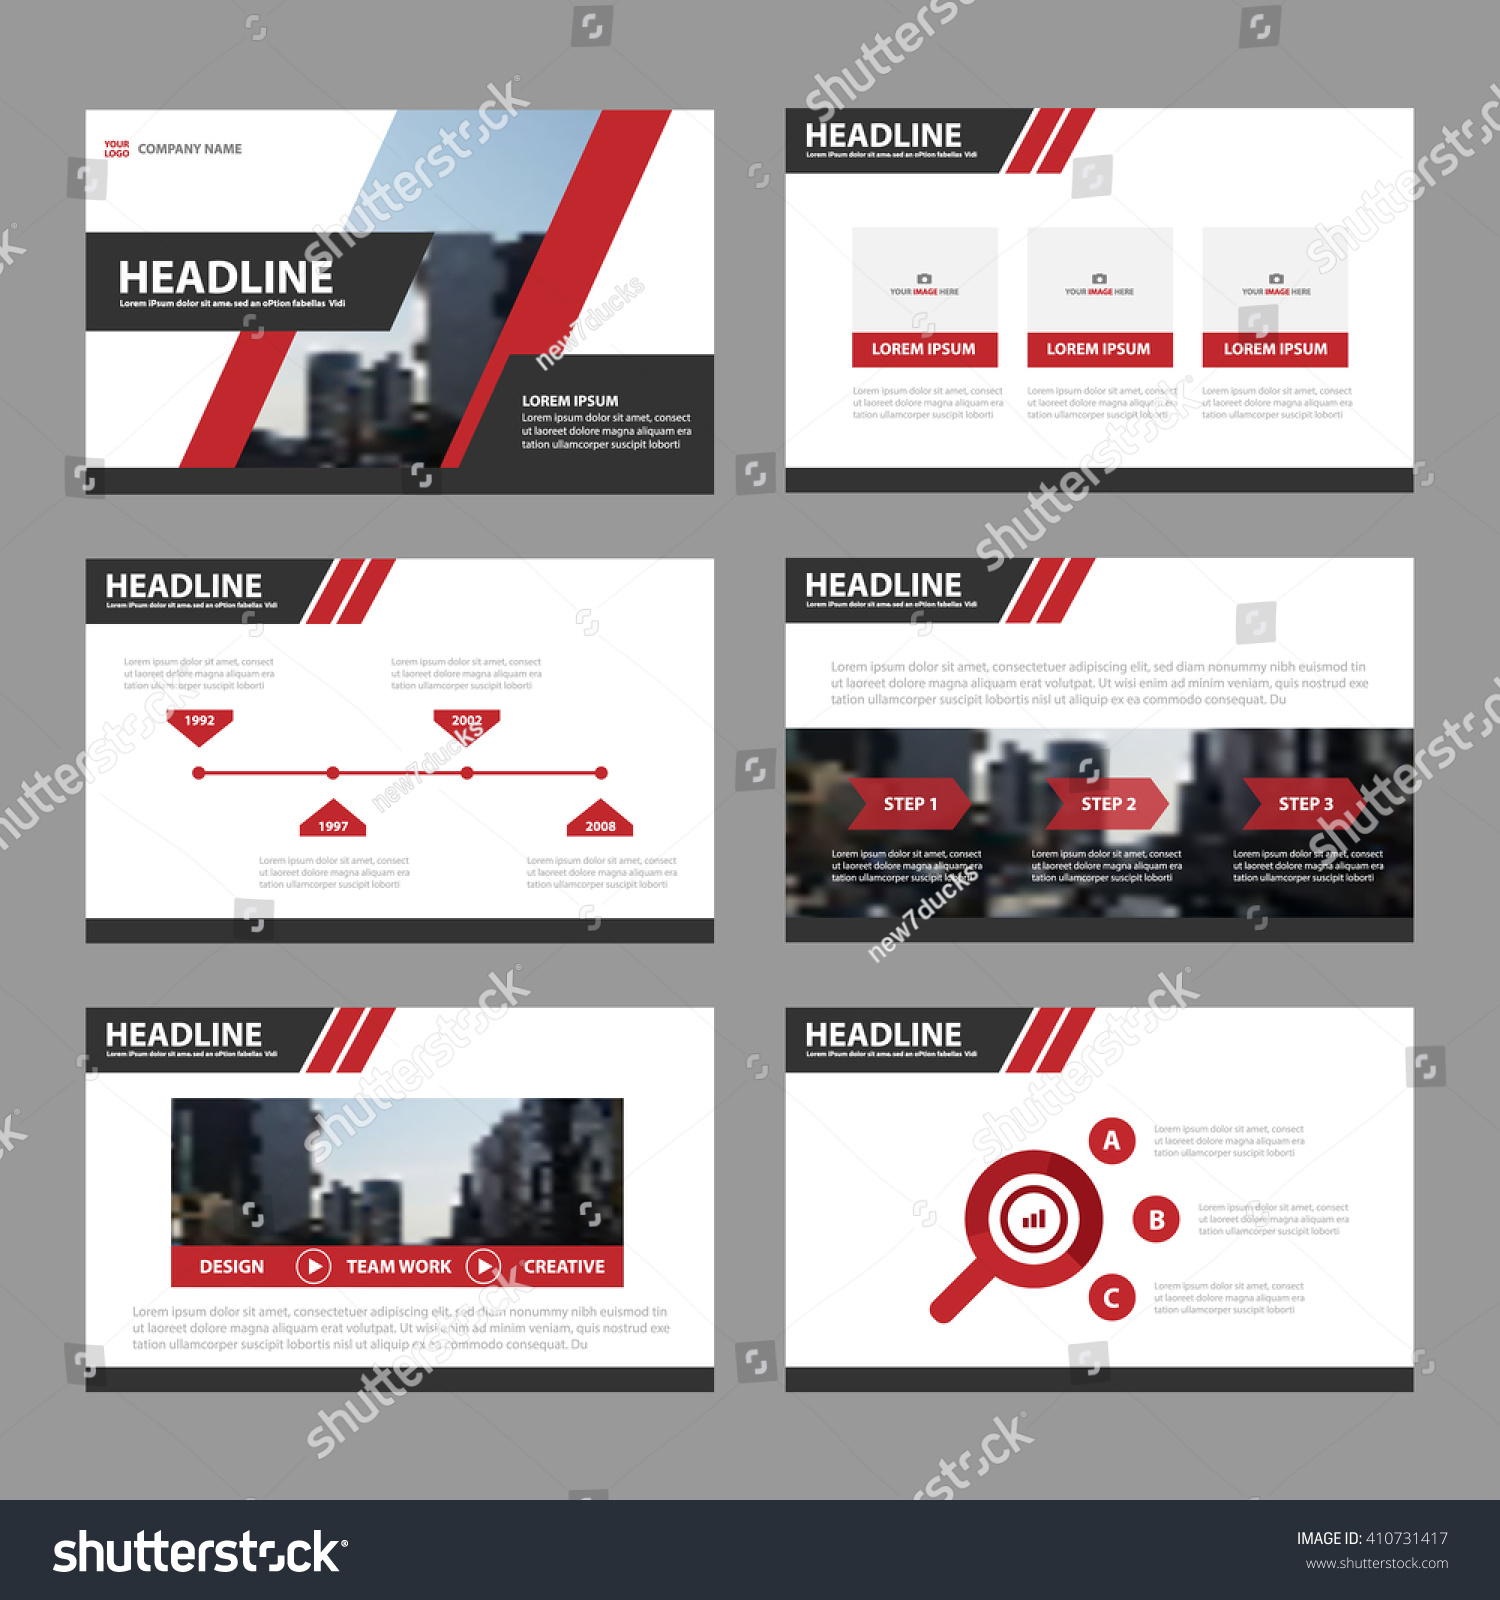 powerpoint brochure templates - red black presentation templates infographic elements